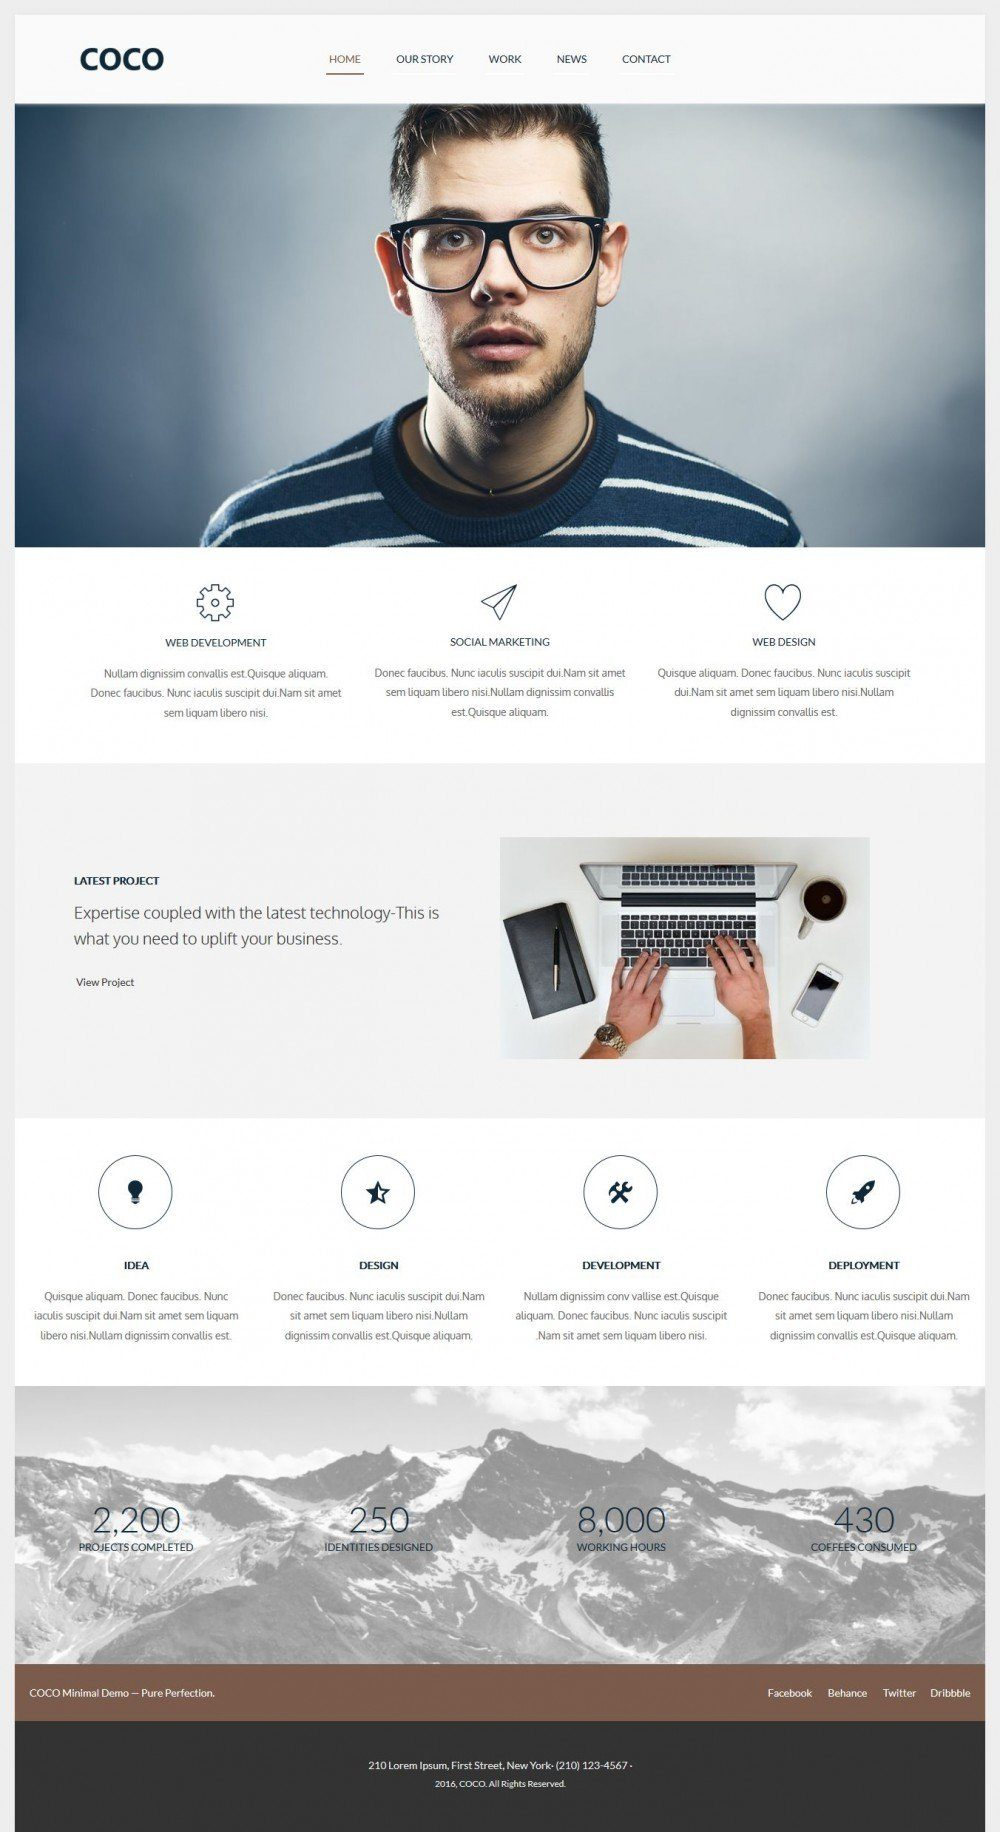 COCO - Flat Designed Joomla Web Agency Template